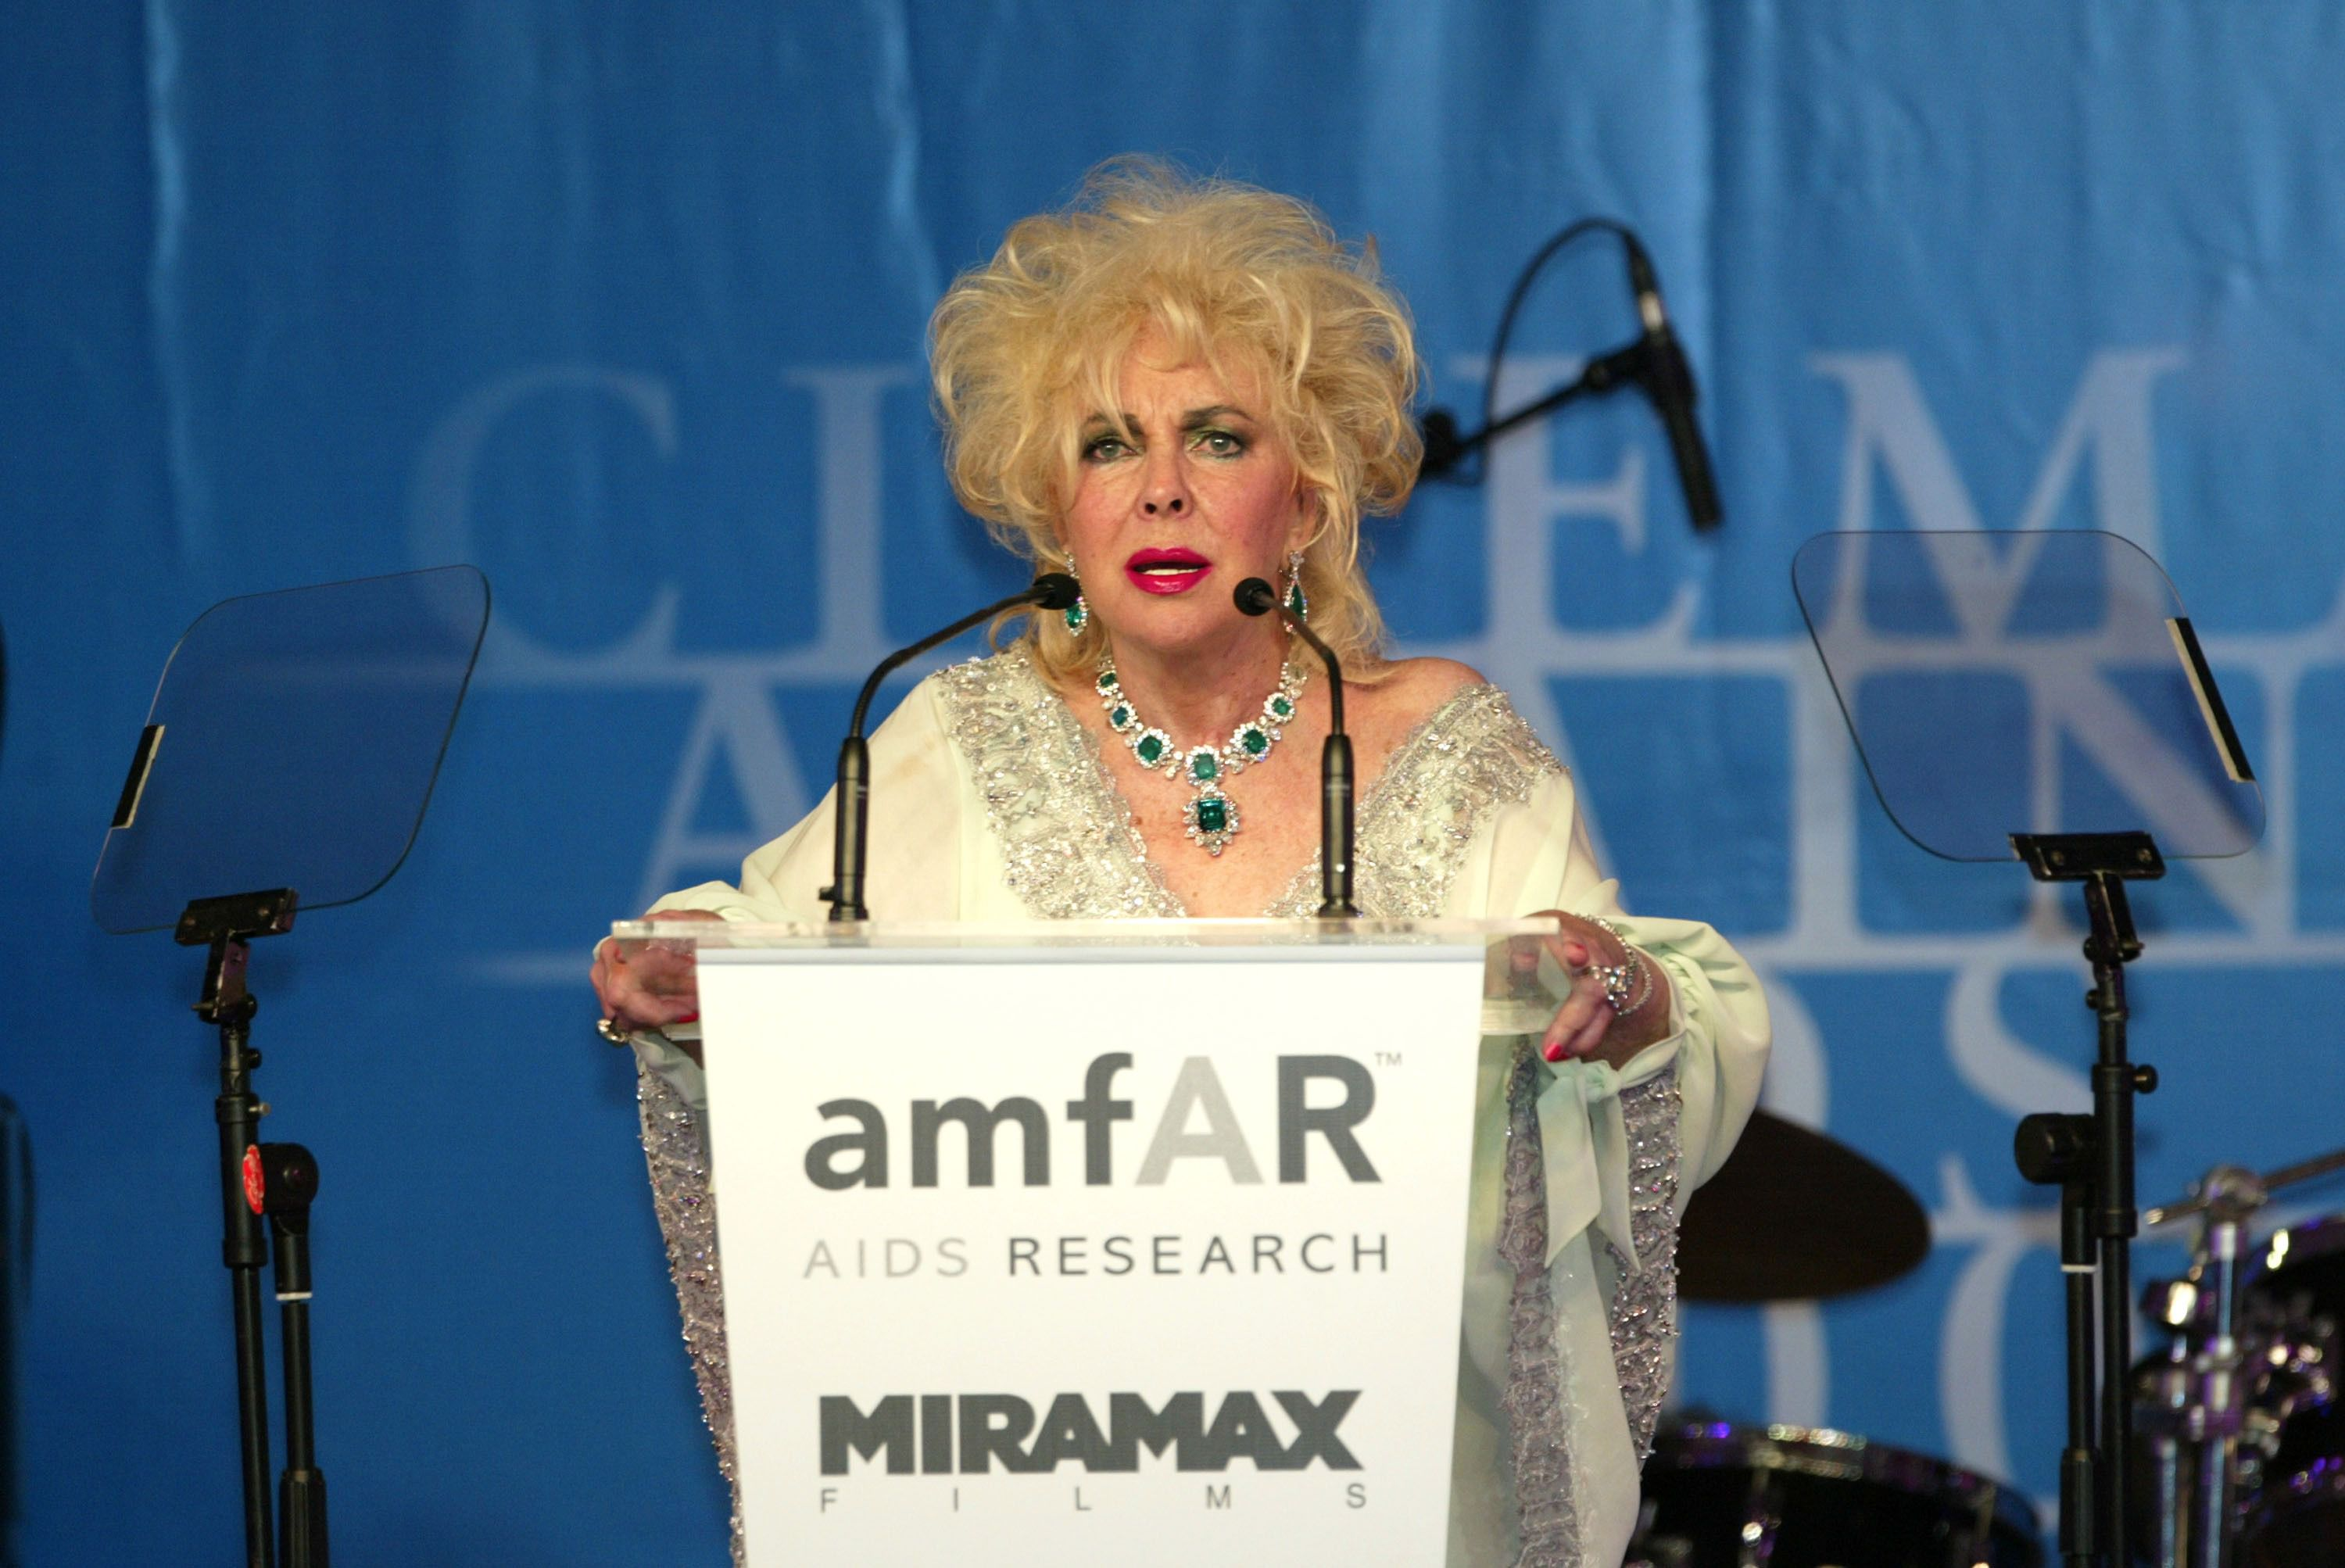 Liz Taylor speaks at amfAR.